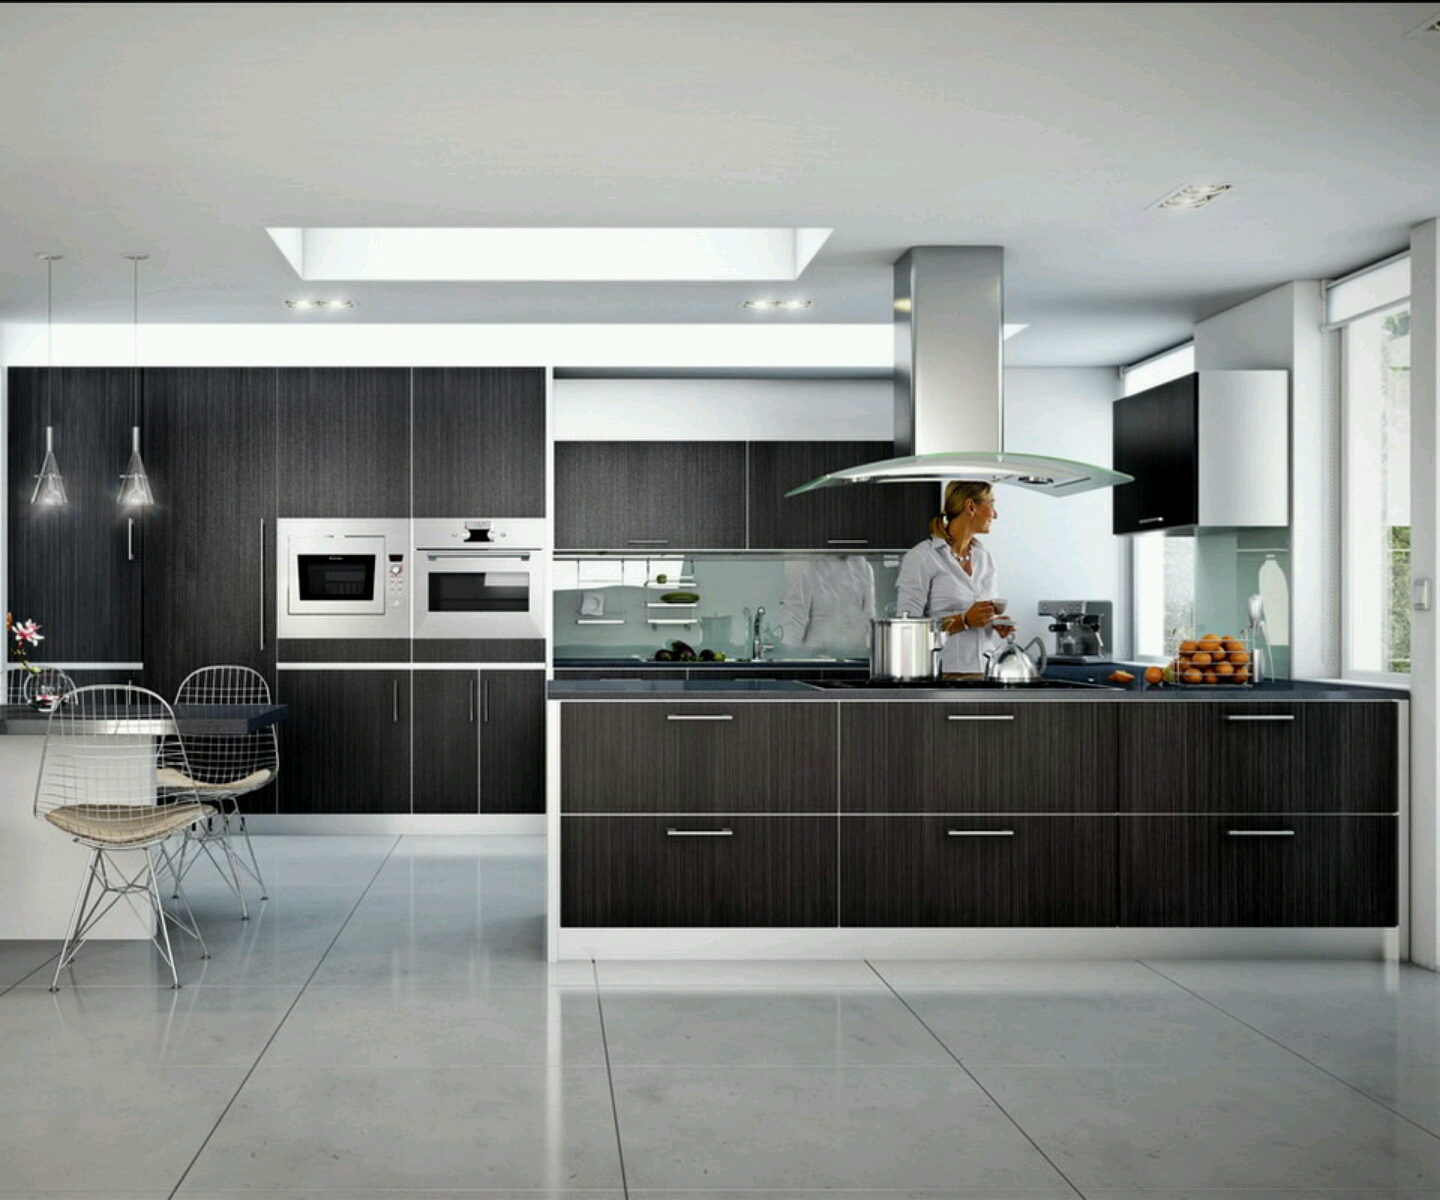 Modern homes ultra modern kitchen designs ideas new Modern kitchen design ideas